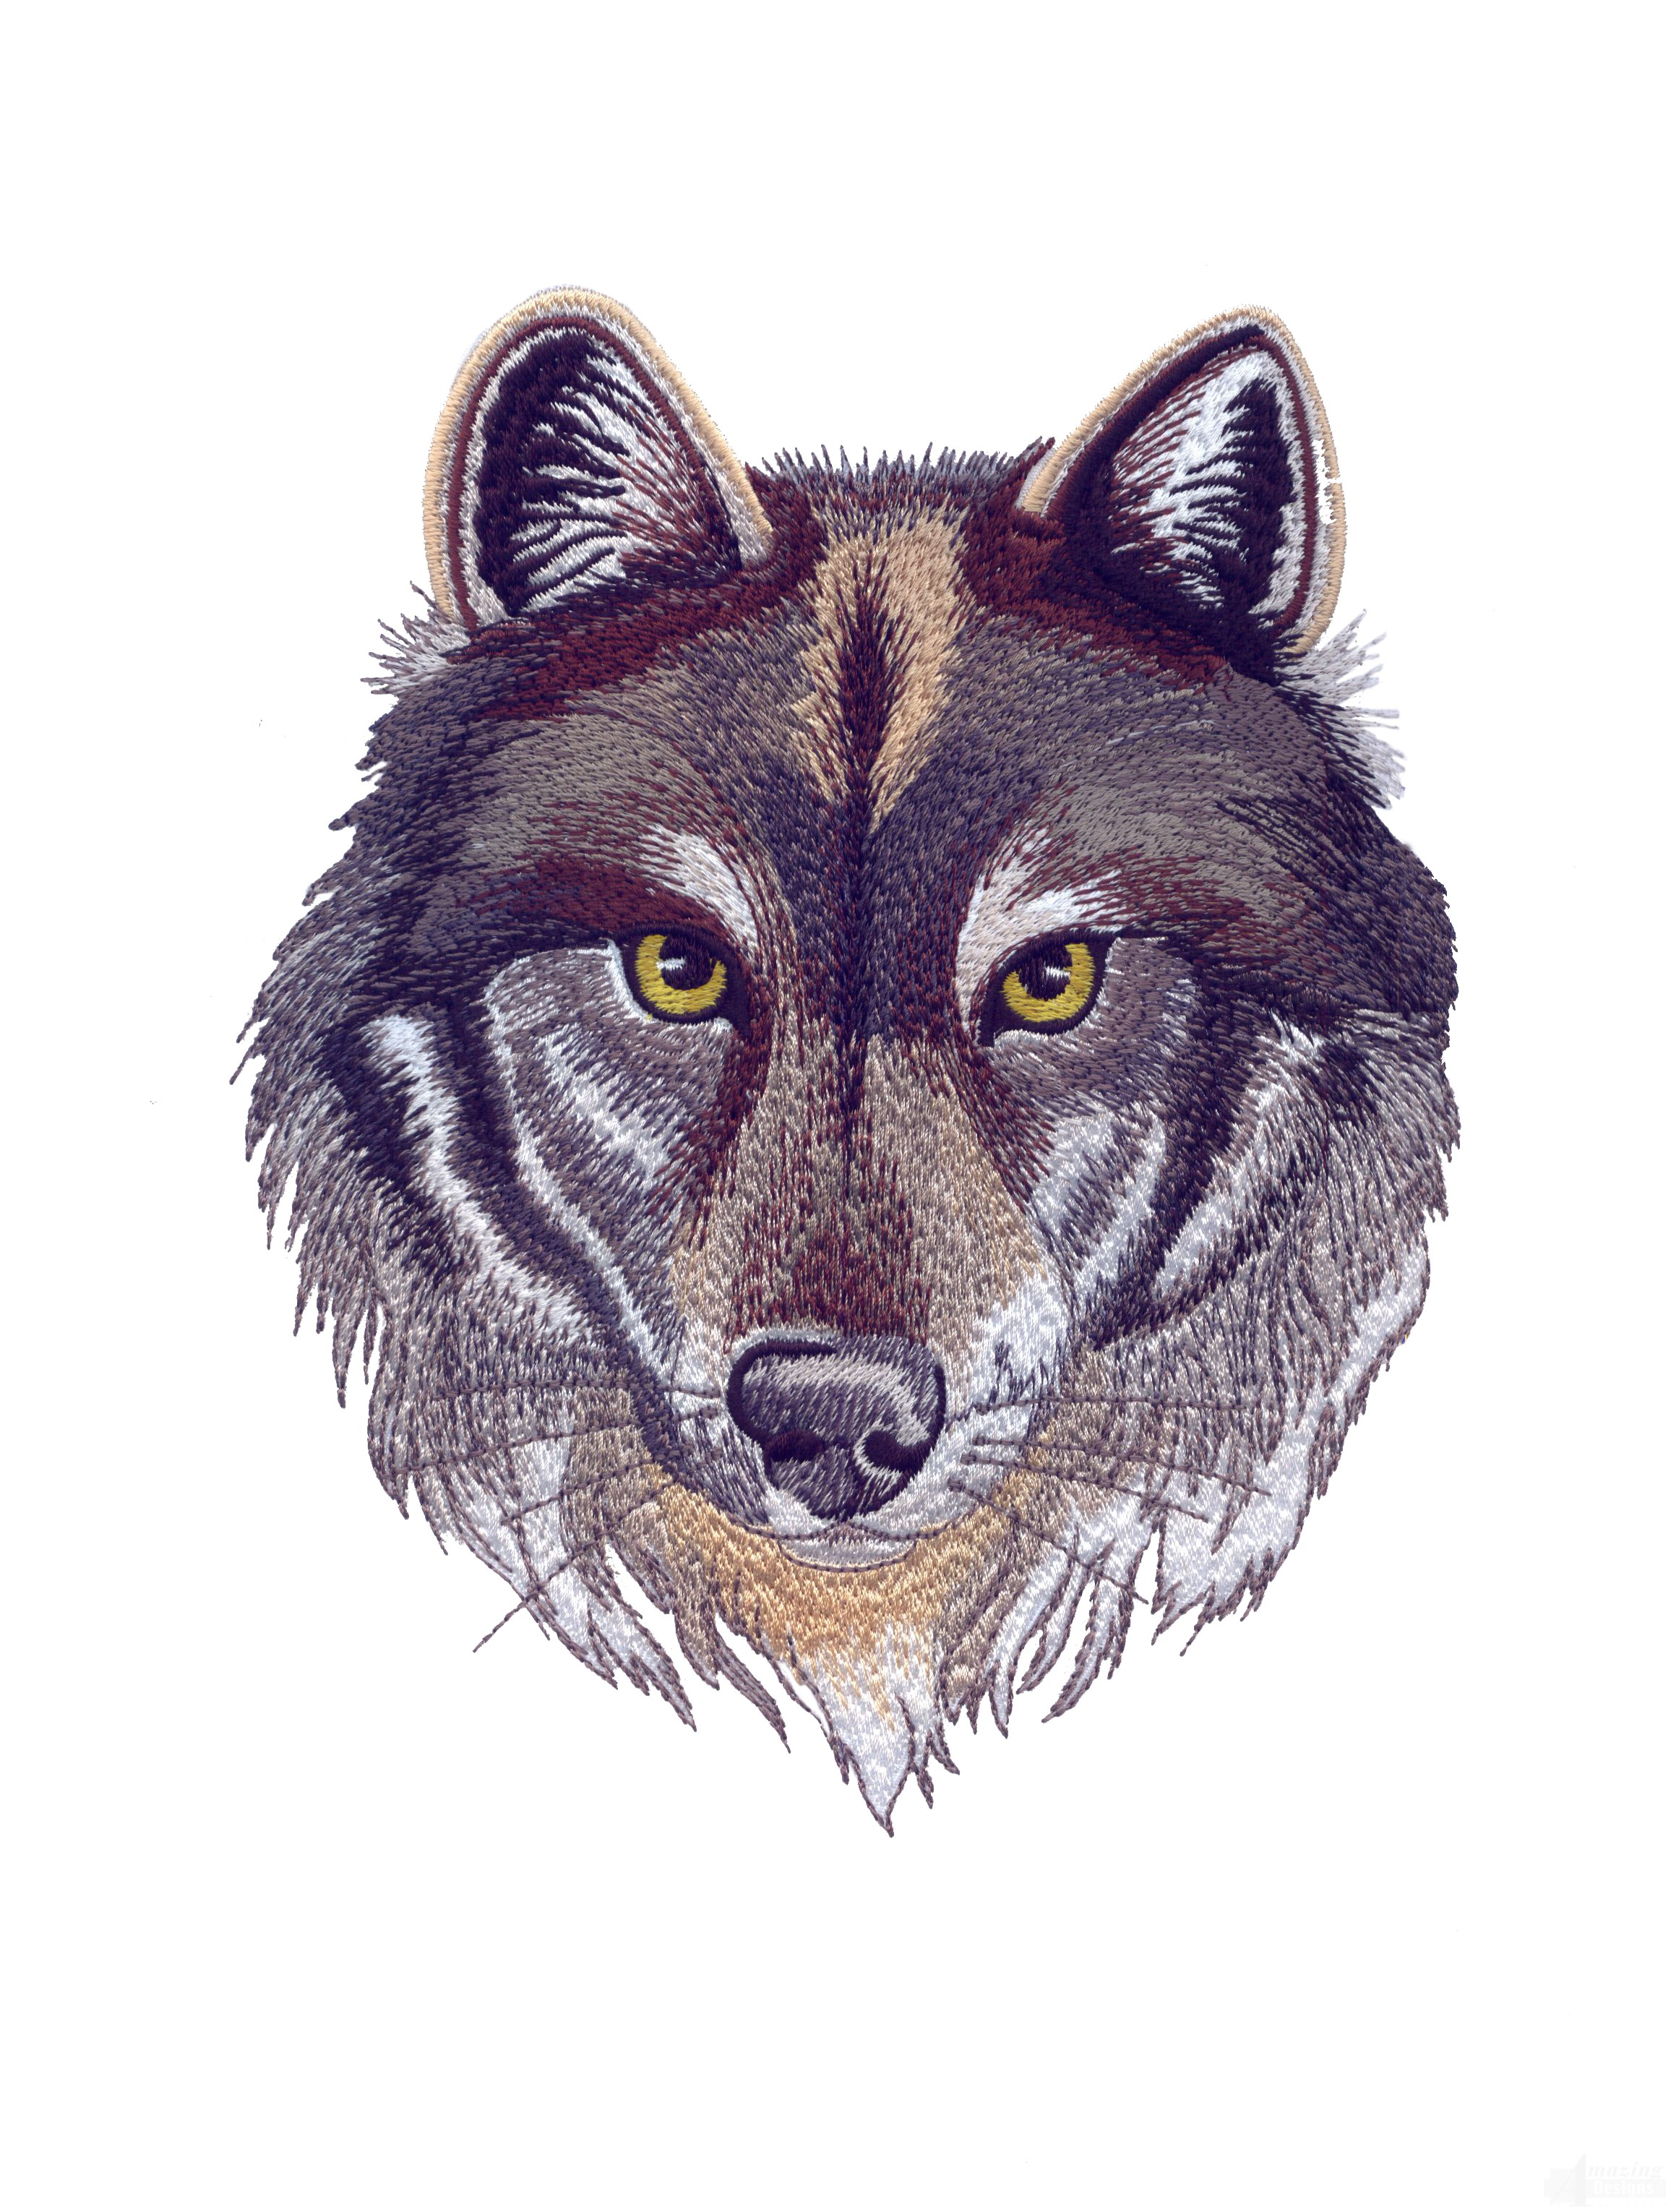 Swnmw124 Wolf Embroidery Design